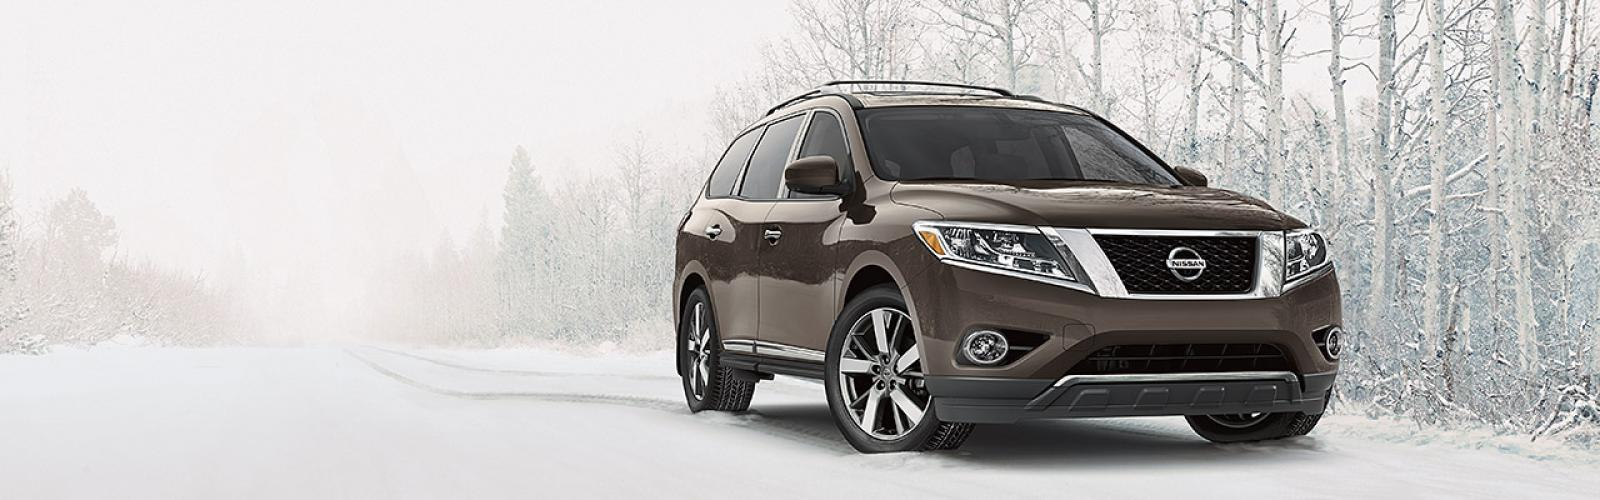 nouvelle nissan rogue 7 seater jeep 100 nissan murano red new nissan rogue sl awd pla nissan. Black Bedroom Furniture Sets. Home Design Ideas